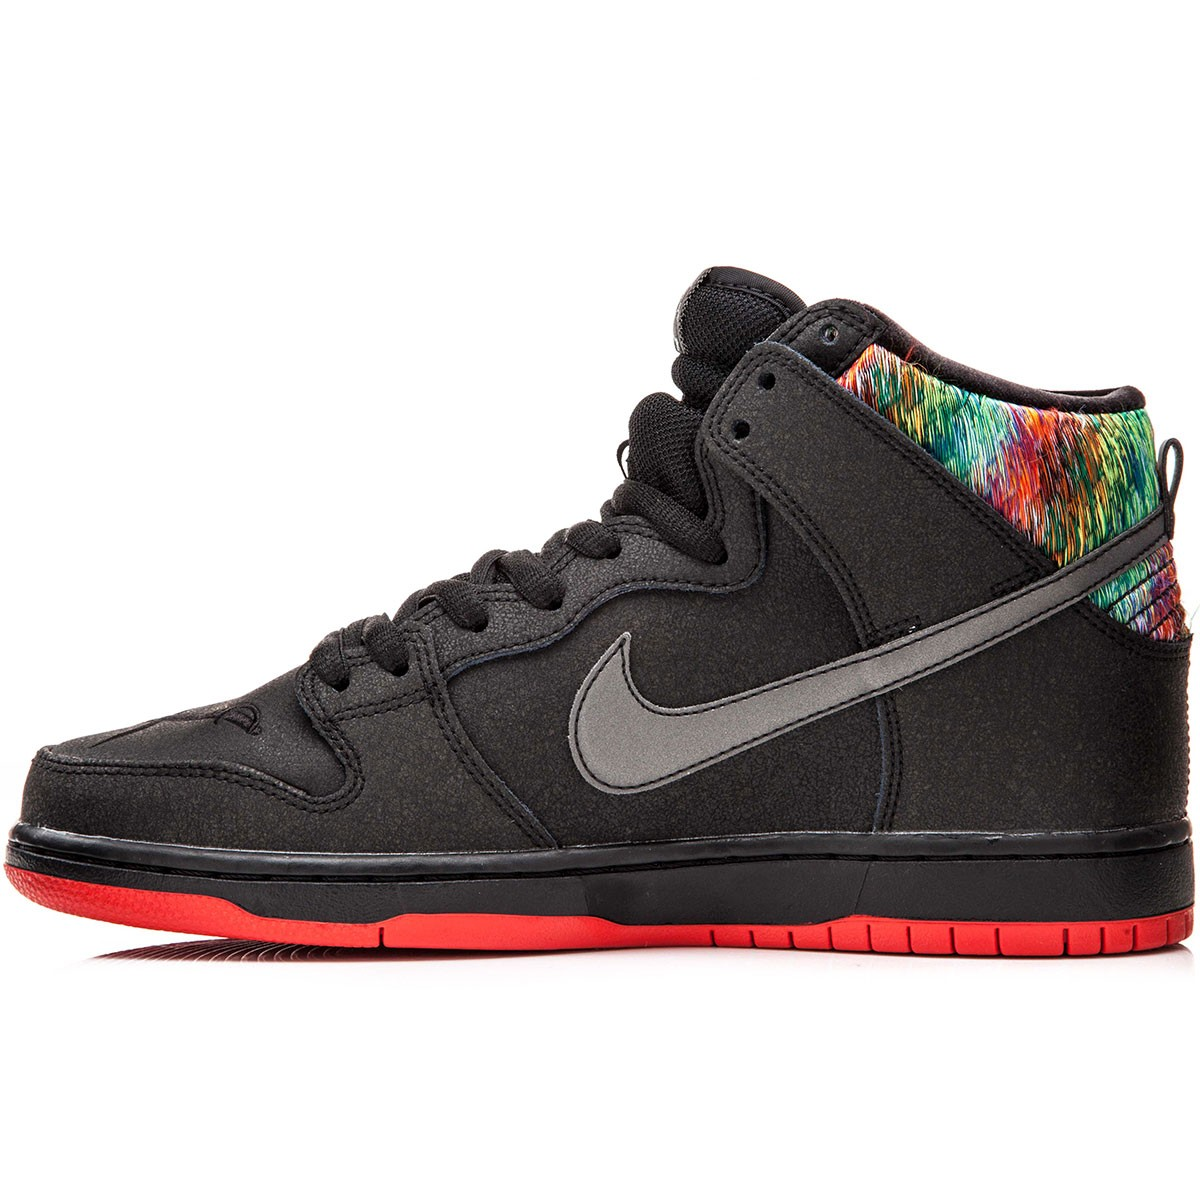 nike sb x spot dunk high gasparilla premium shoes. Black Bedroom Furniture Sets. Home Design Ideas